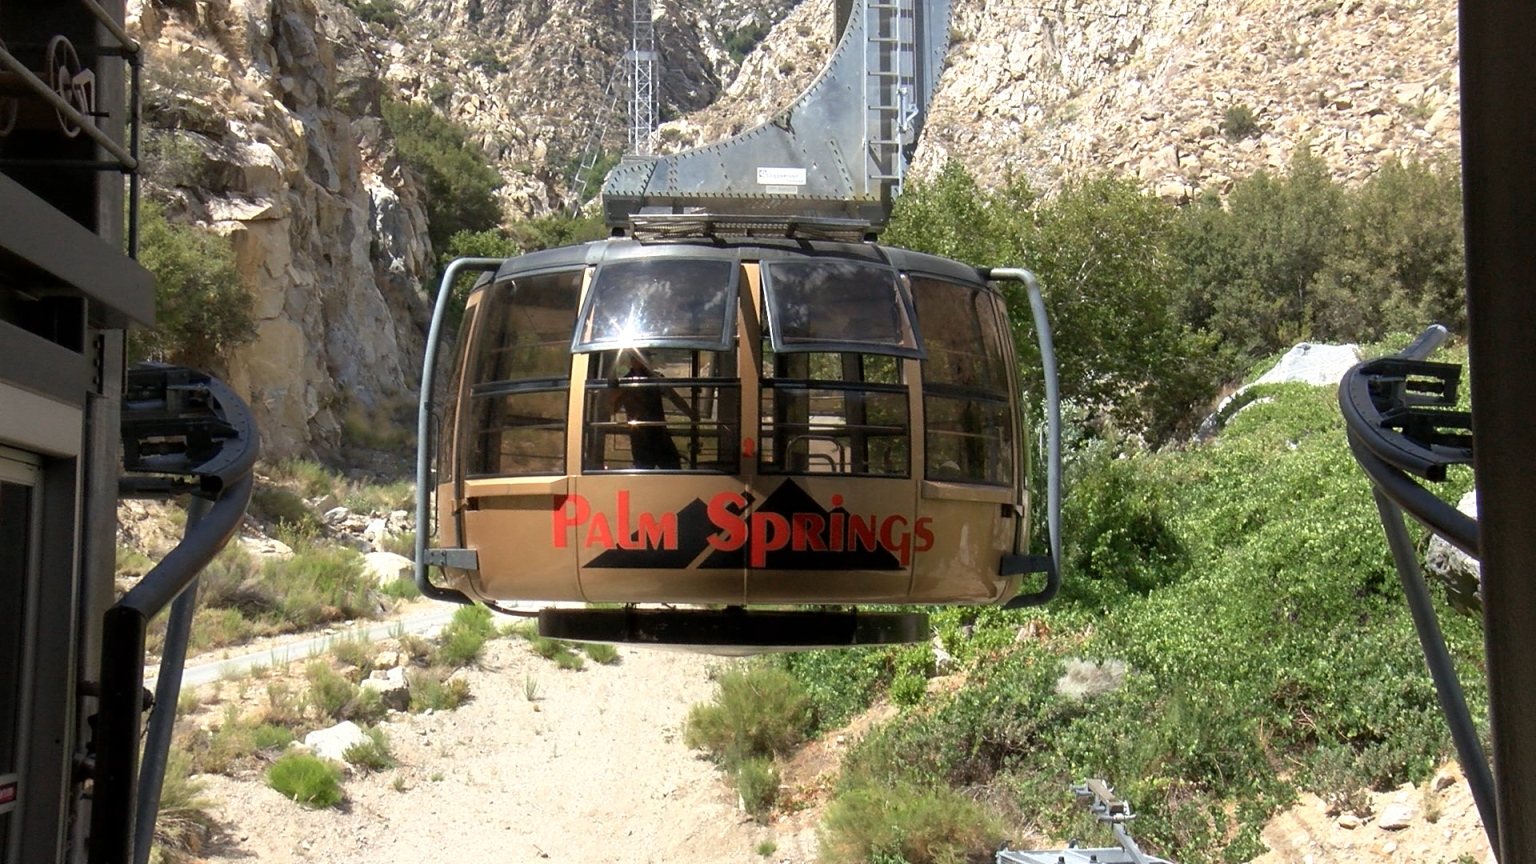 Palm Springs Aerial Tramway Closes For Month-Long Maintenance